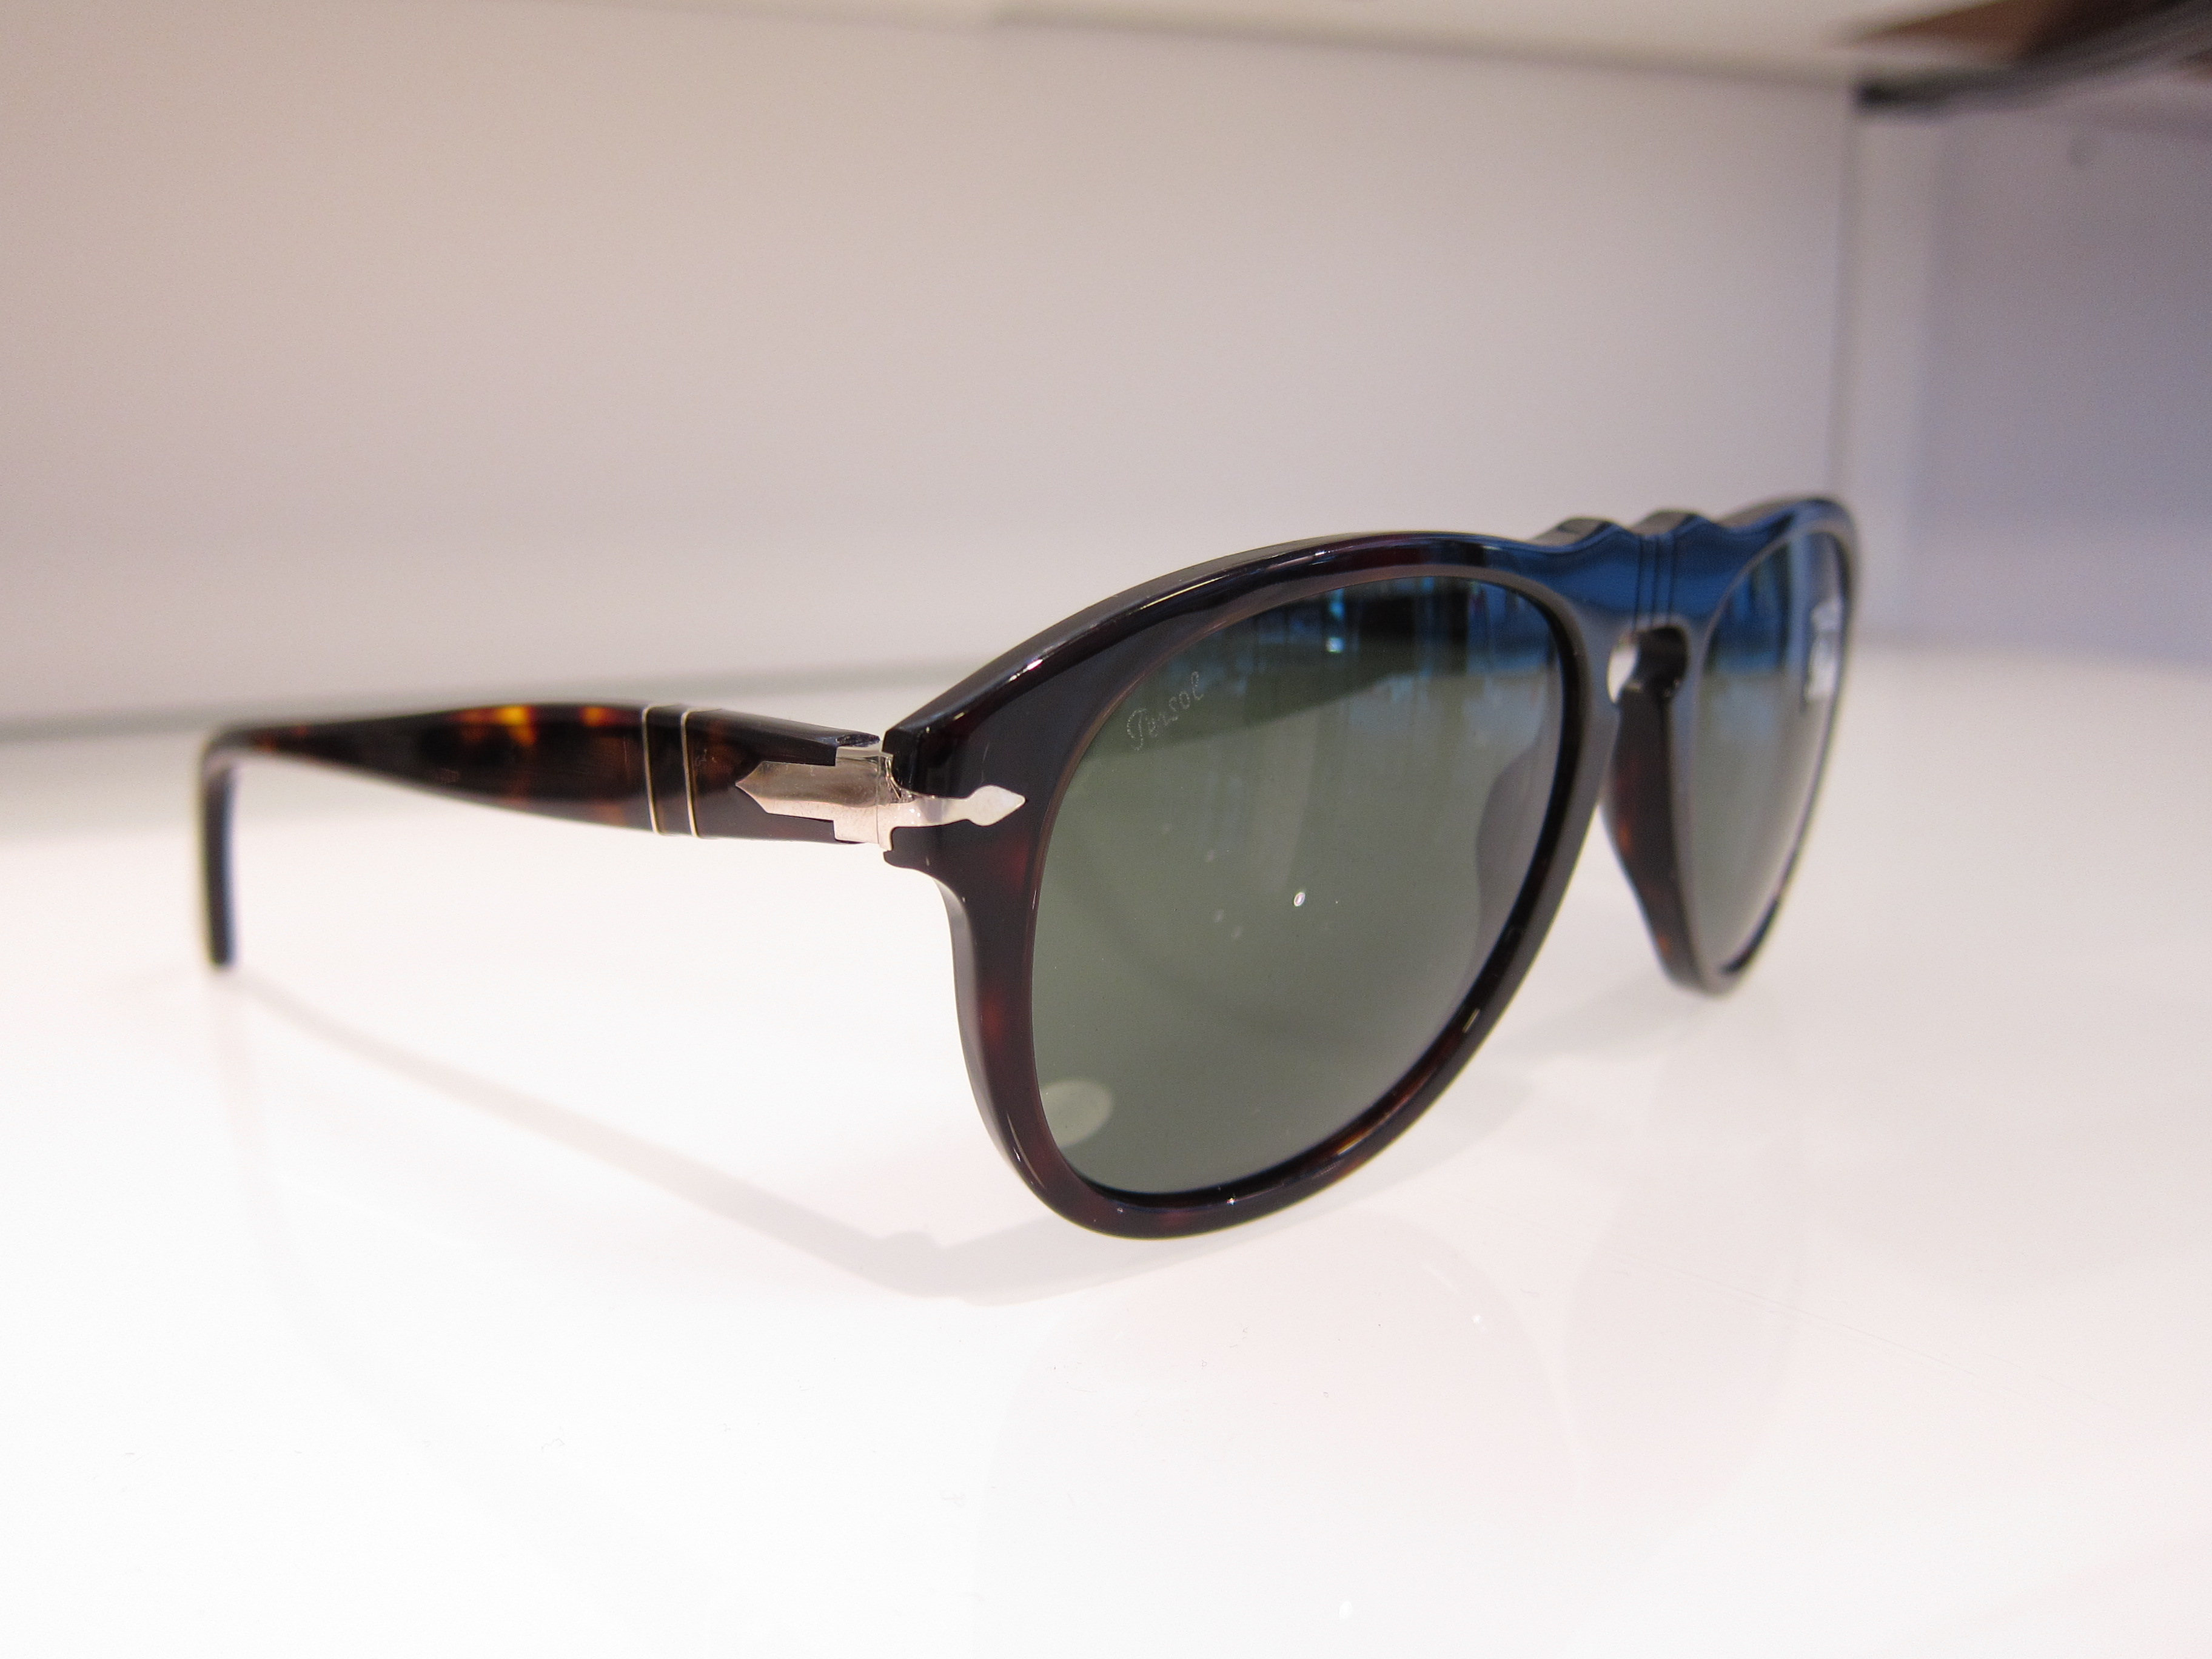 dd6013de984cd Persol 649 in Dark Tortoise and G-15 Lens – Bonocle